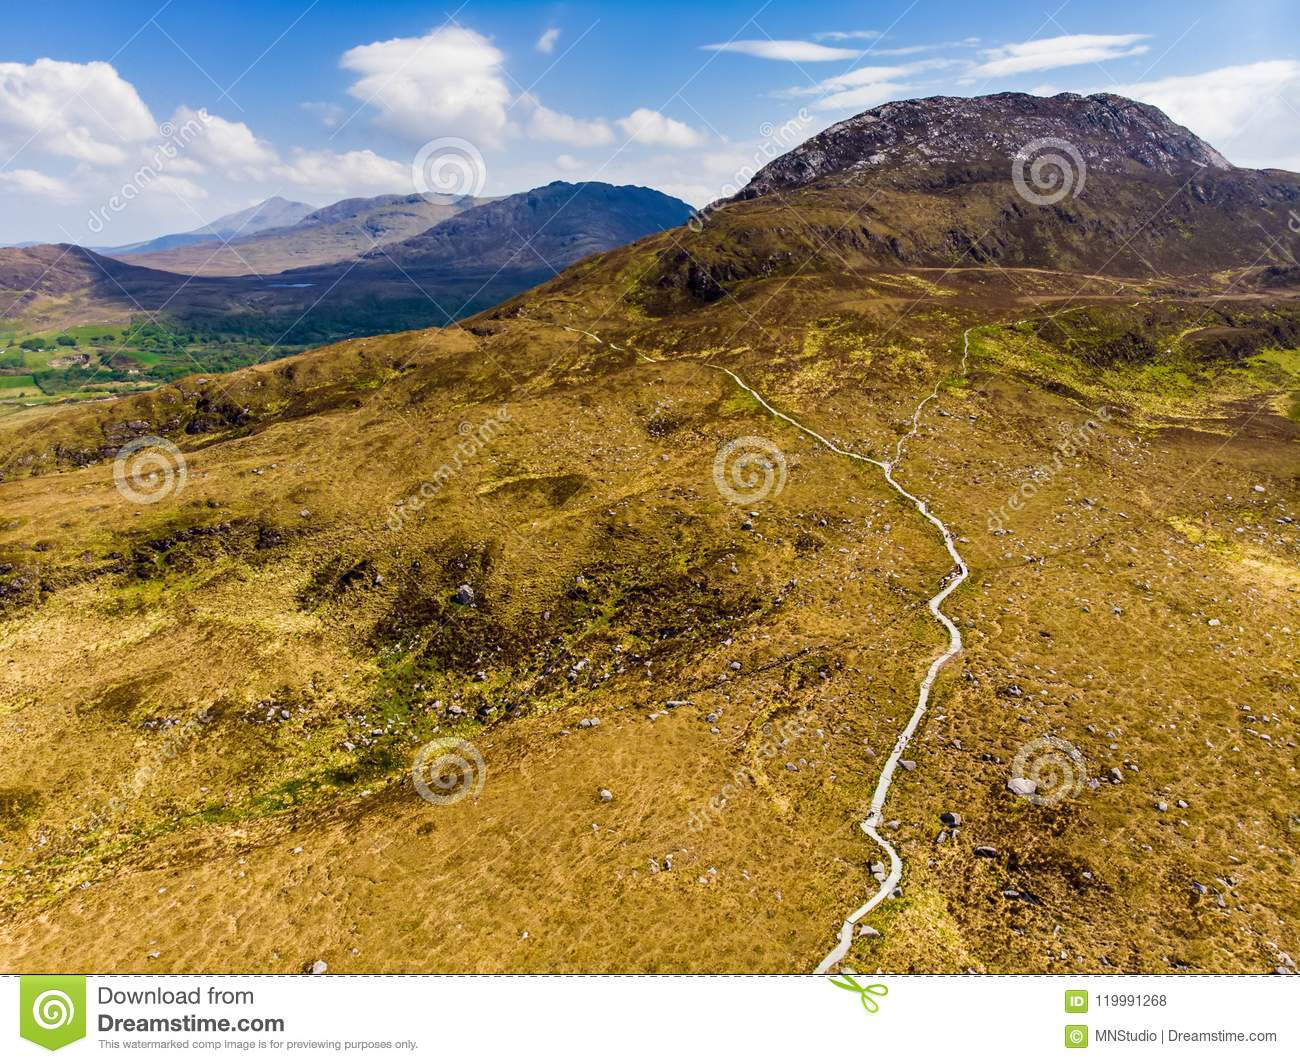 Beautiful view of Connemara National Park, famous for bogs and heaths, watched over by its cone-shaped mountain, Diamond Hill, Ire